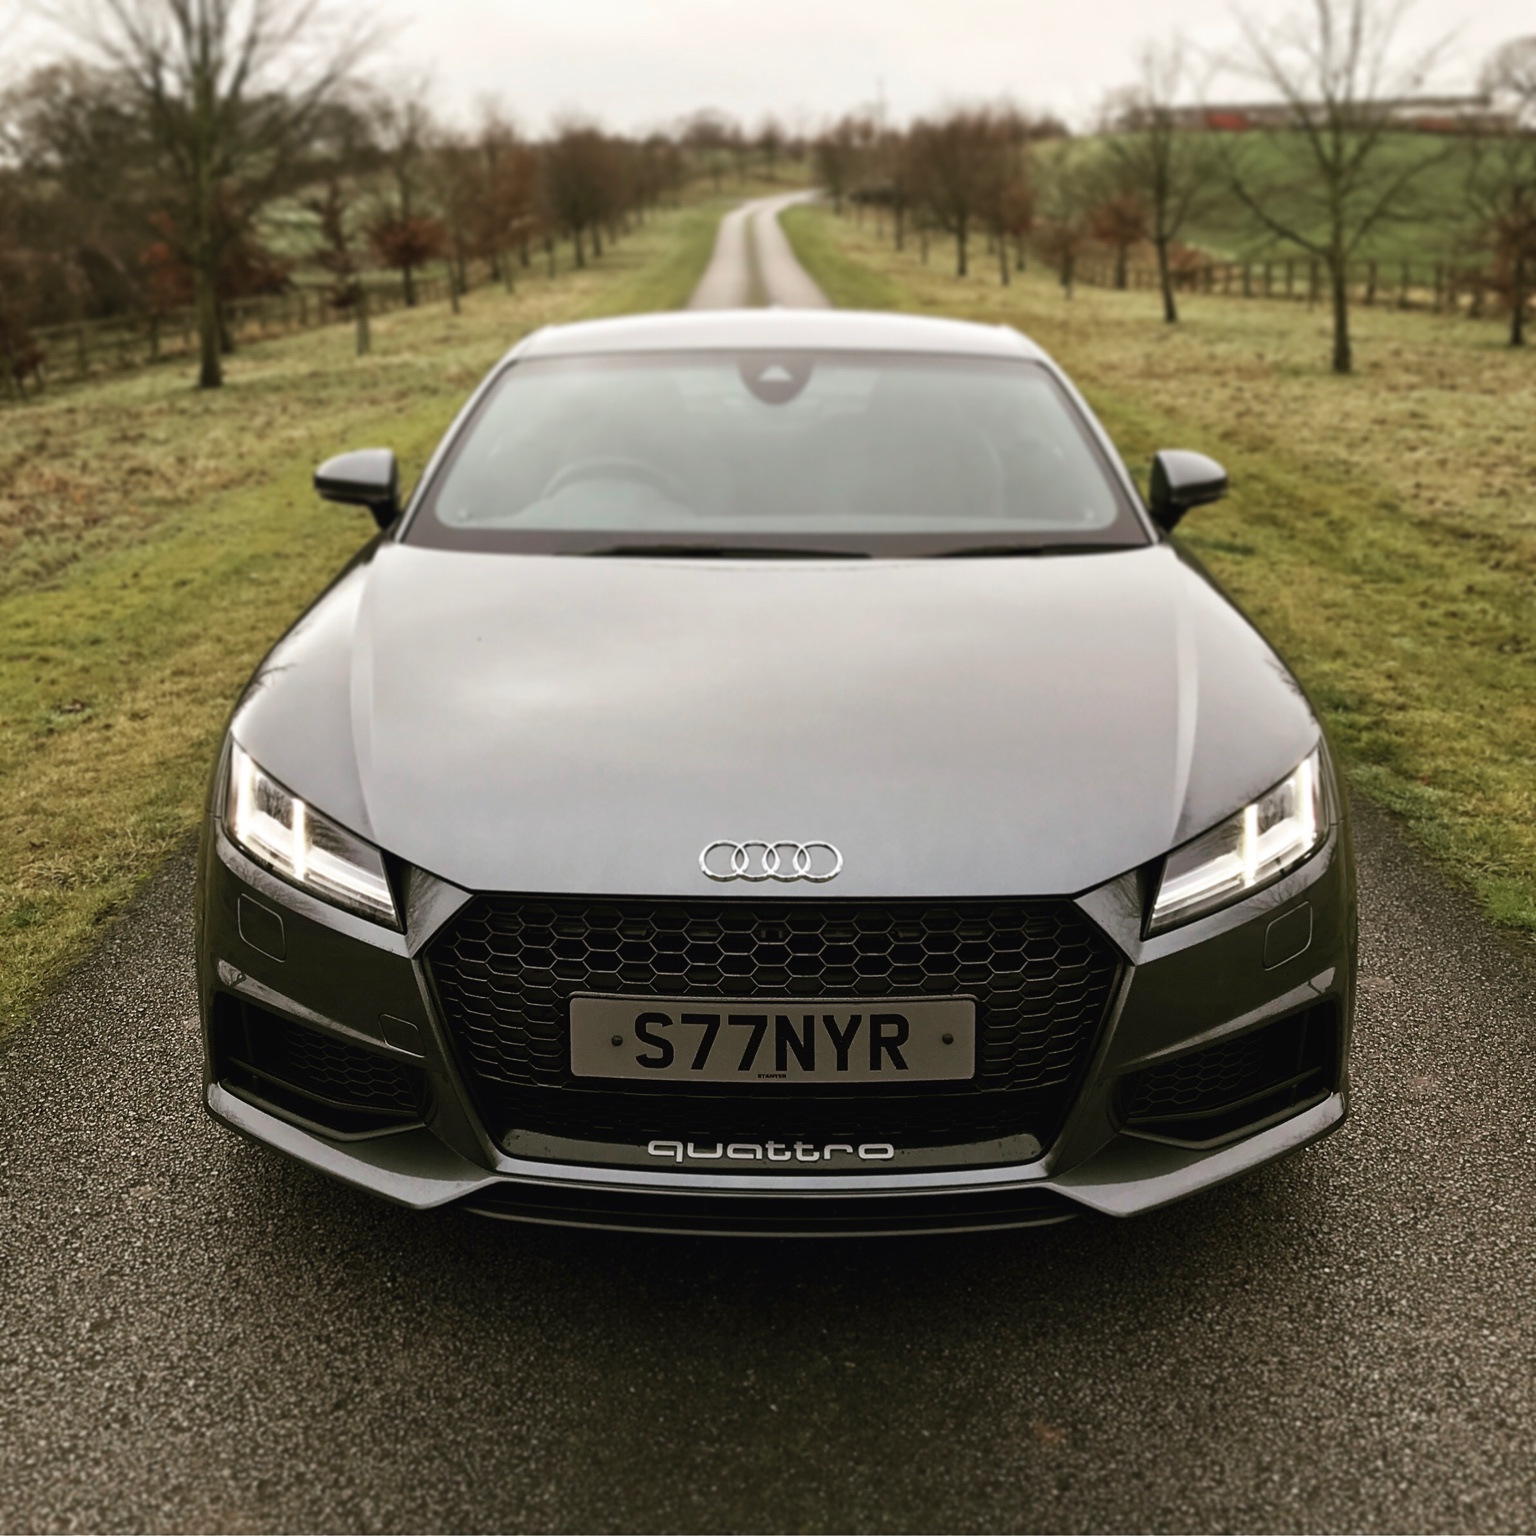 Tt rs grill black or silver